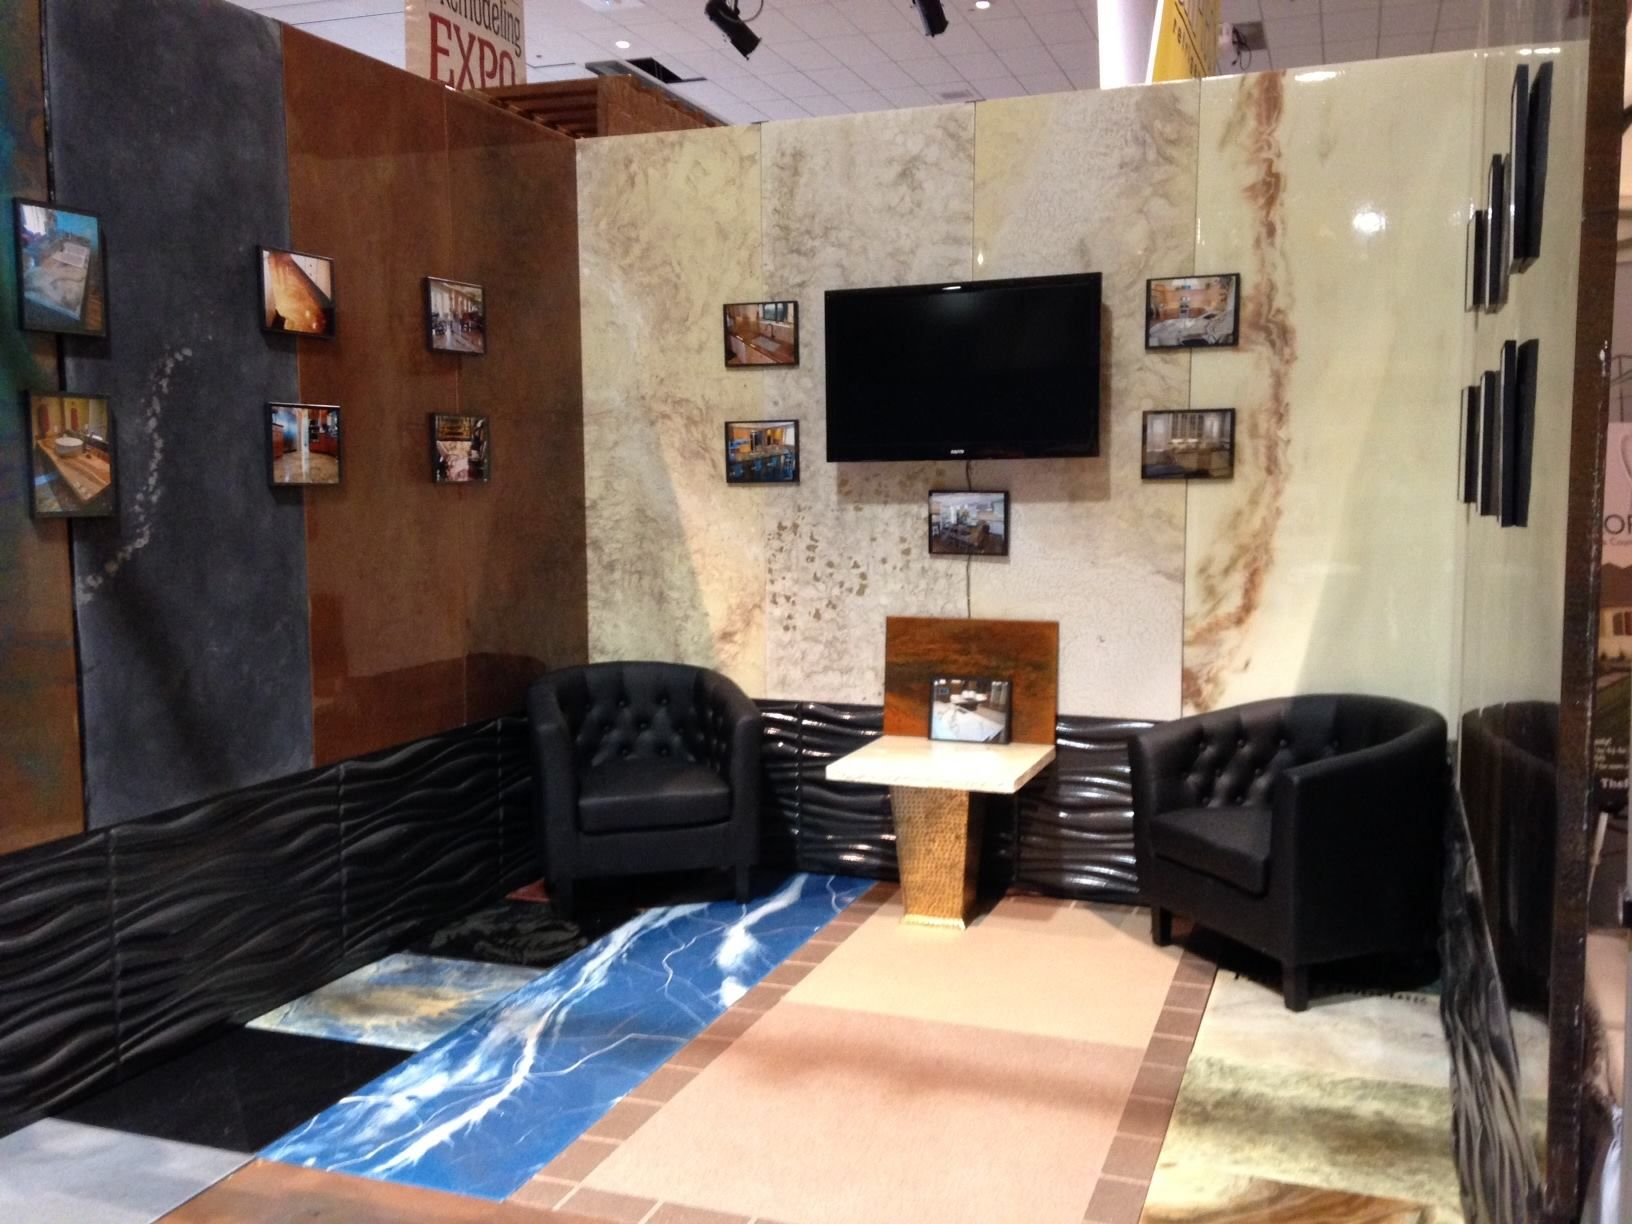 2014 Home Show In Grand Junction Co Epoxy Resin